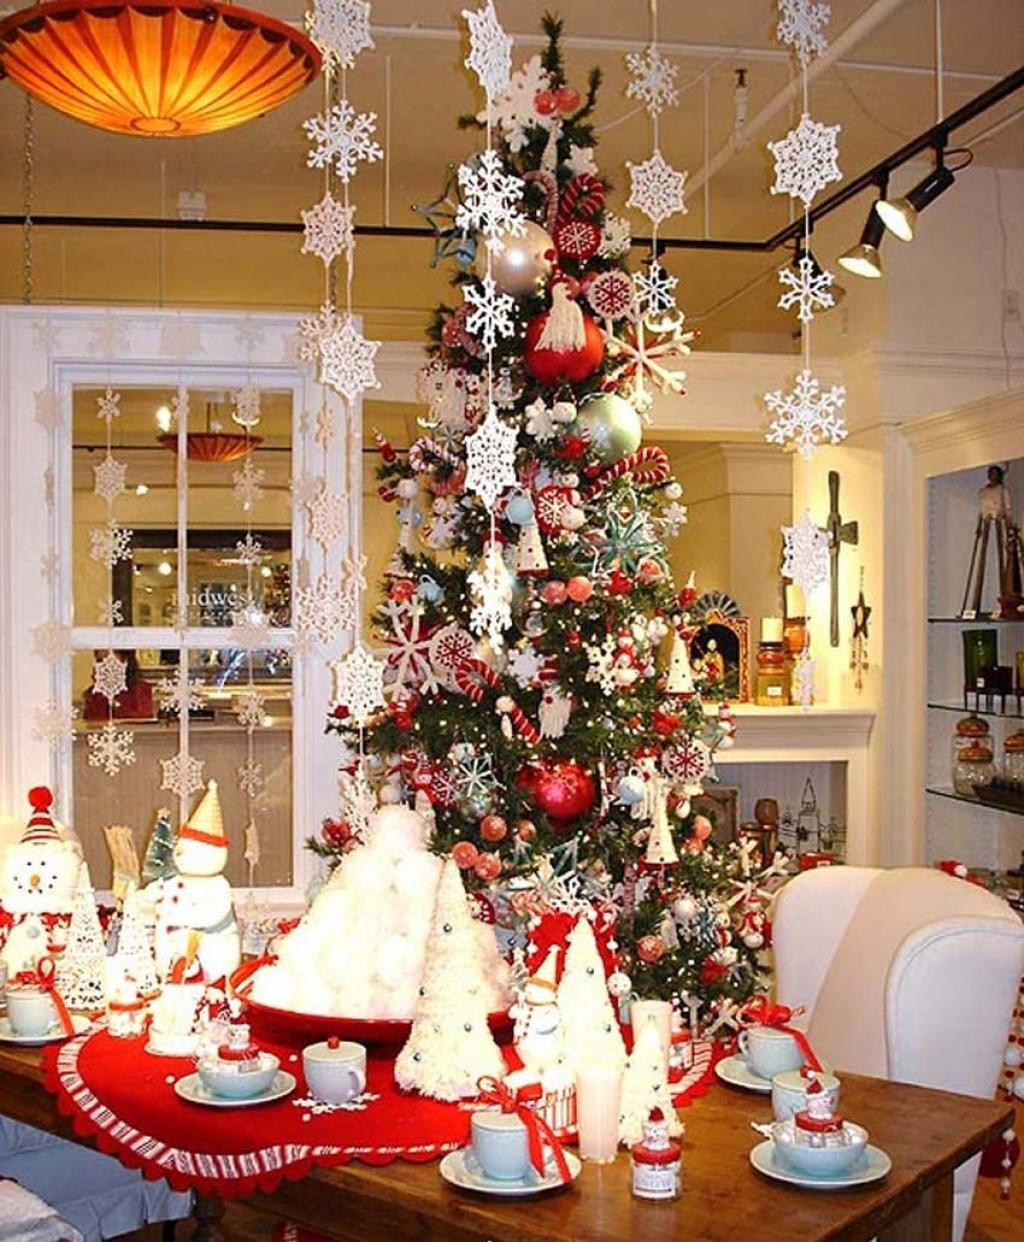 Holiday Home Design Ideas: 40 Christmas Table Decors Ideas To Inspire Your Pinterest